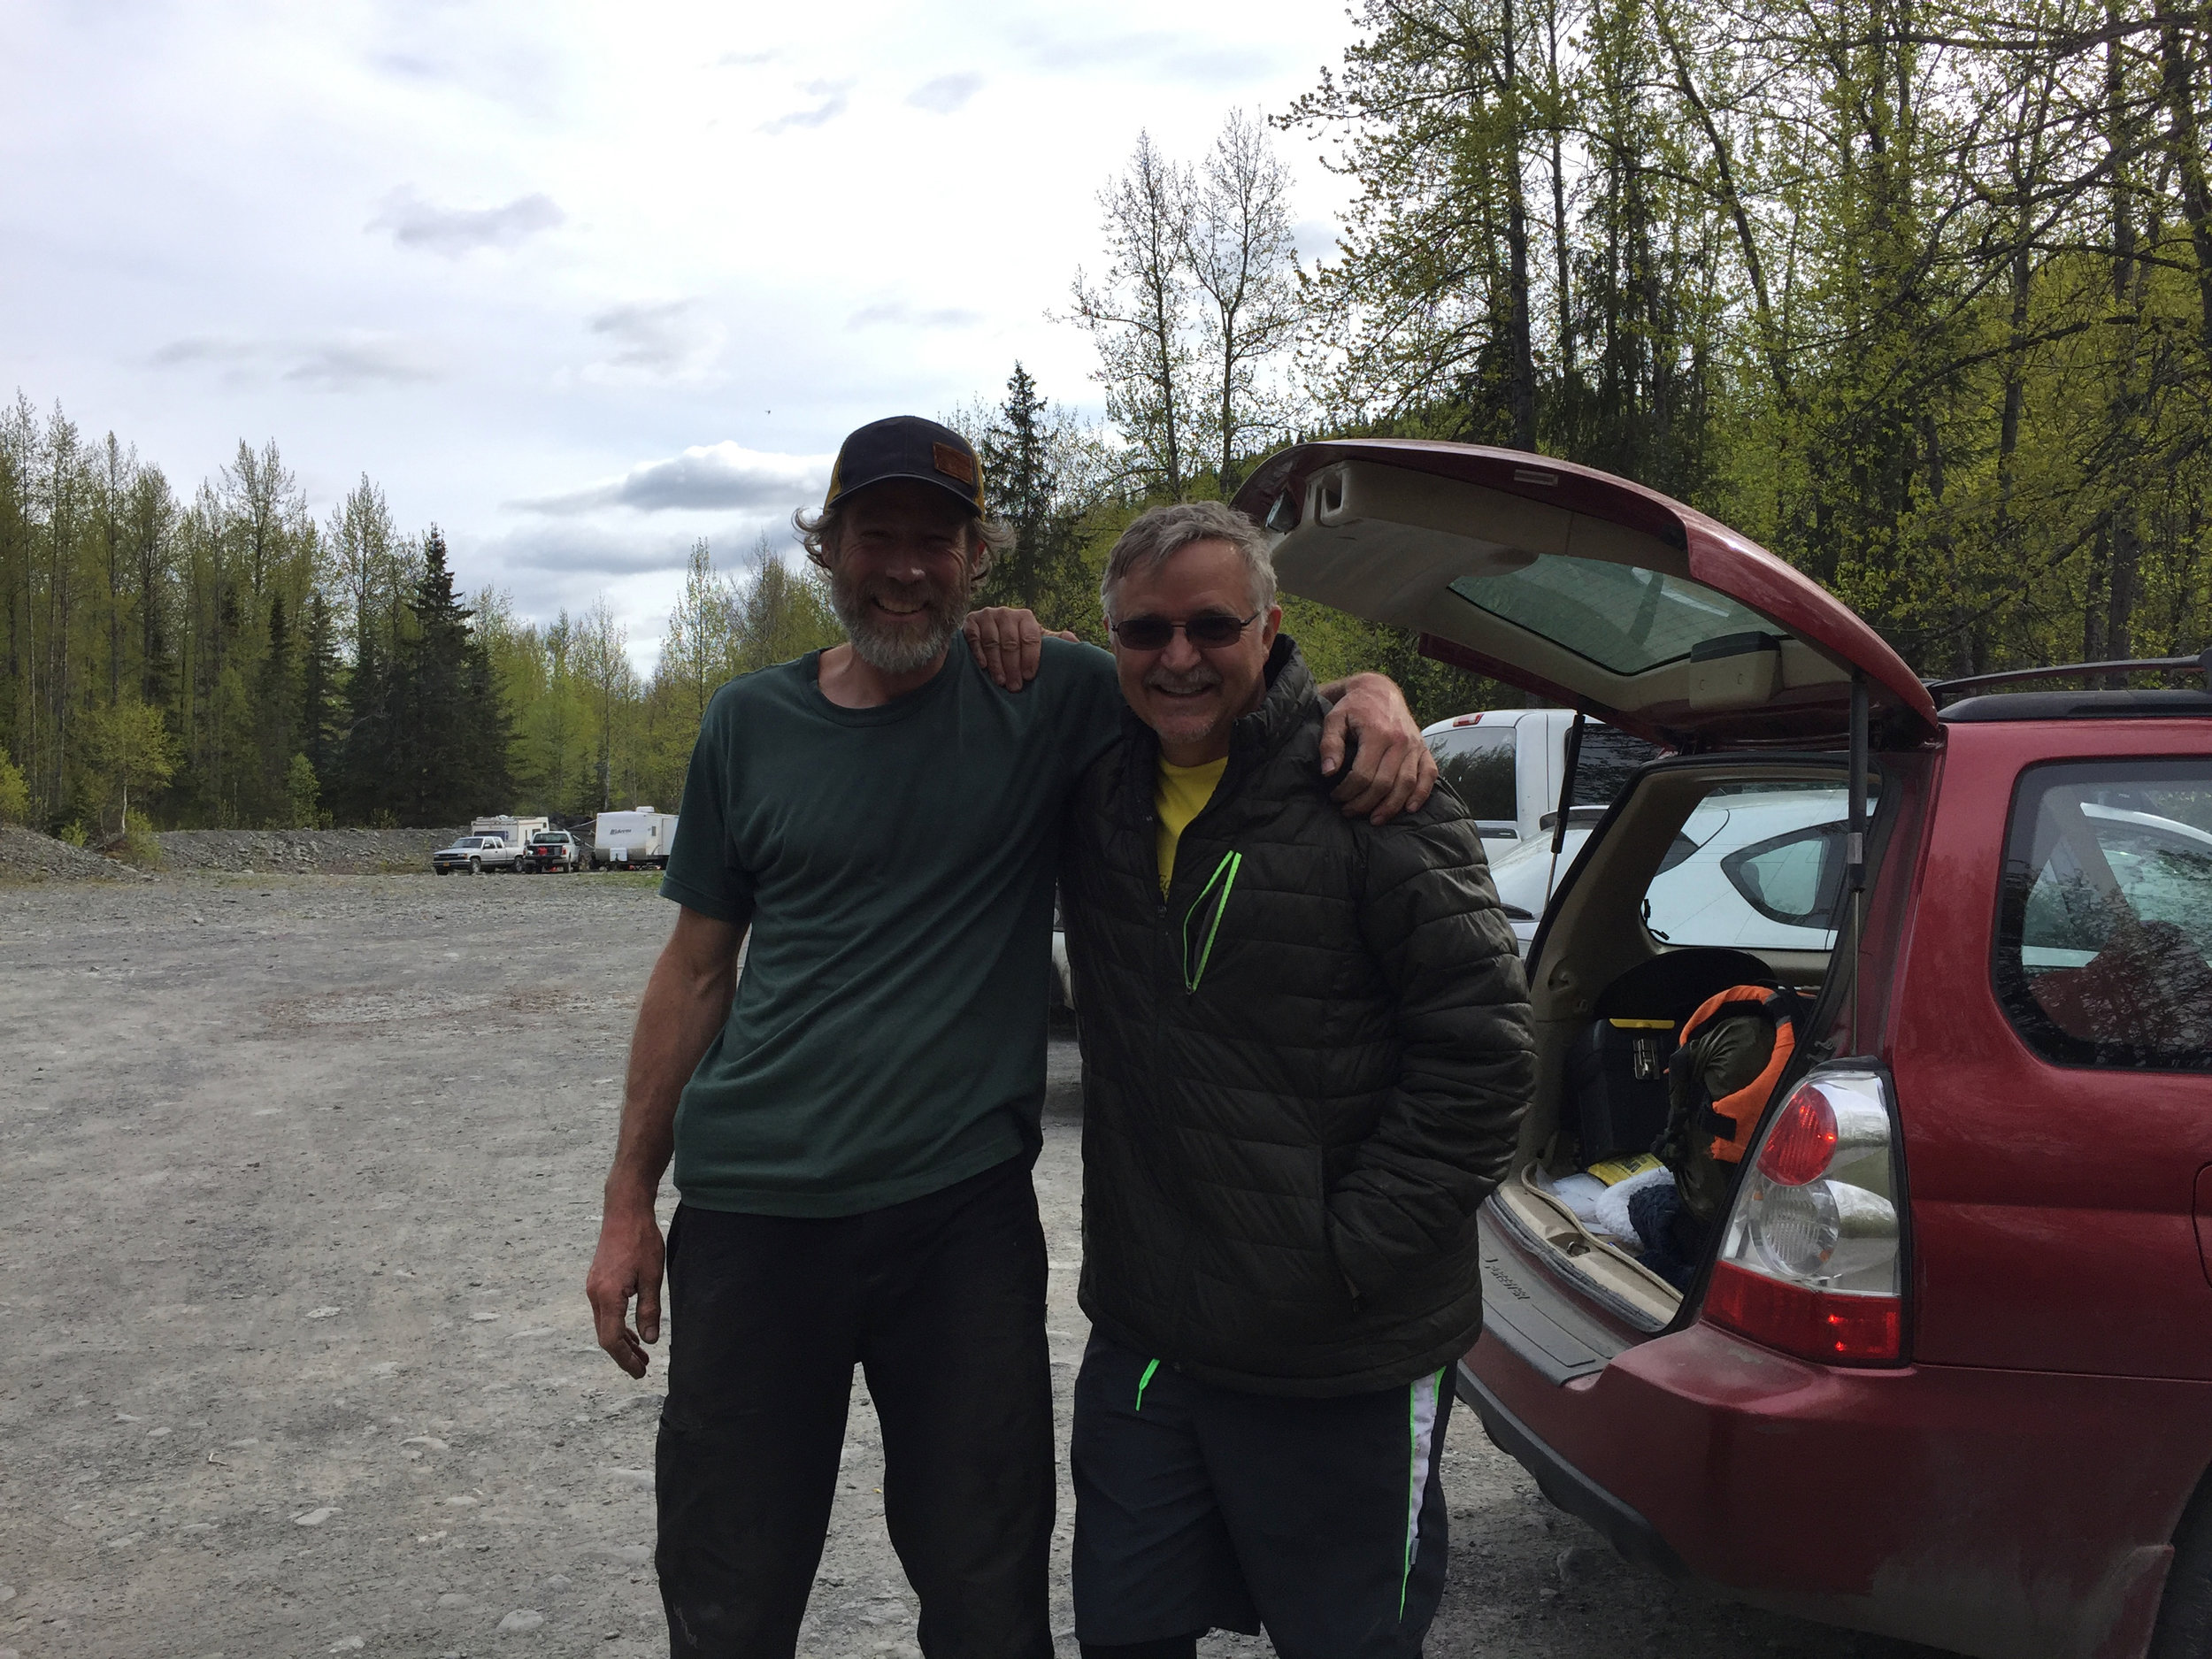 It was great to bump into Joel at the Hope campground. He took our packrafts and gave us a ride to the Resurrection Pass trailhead